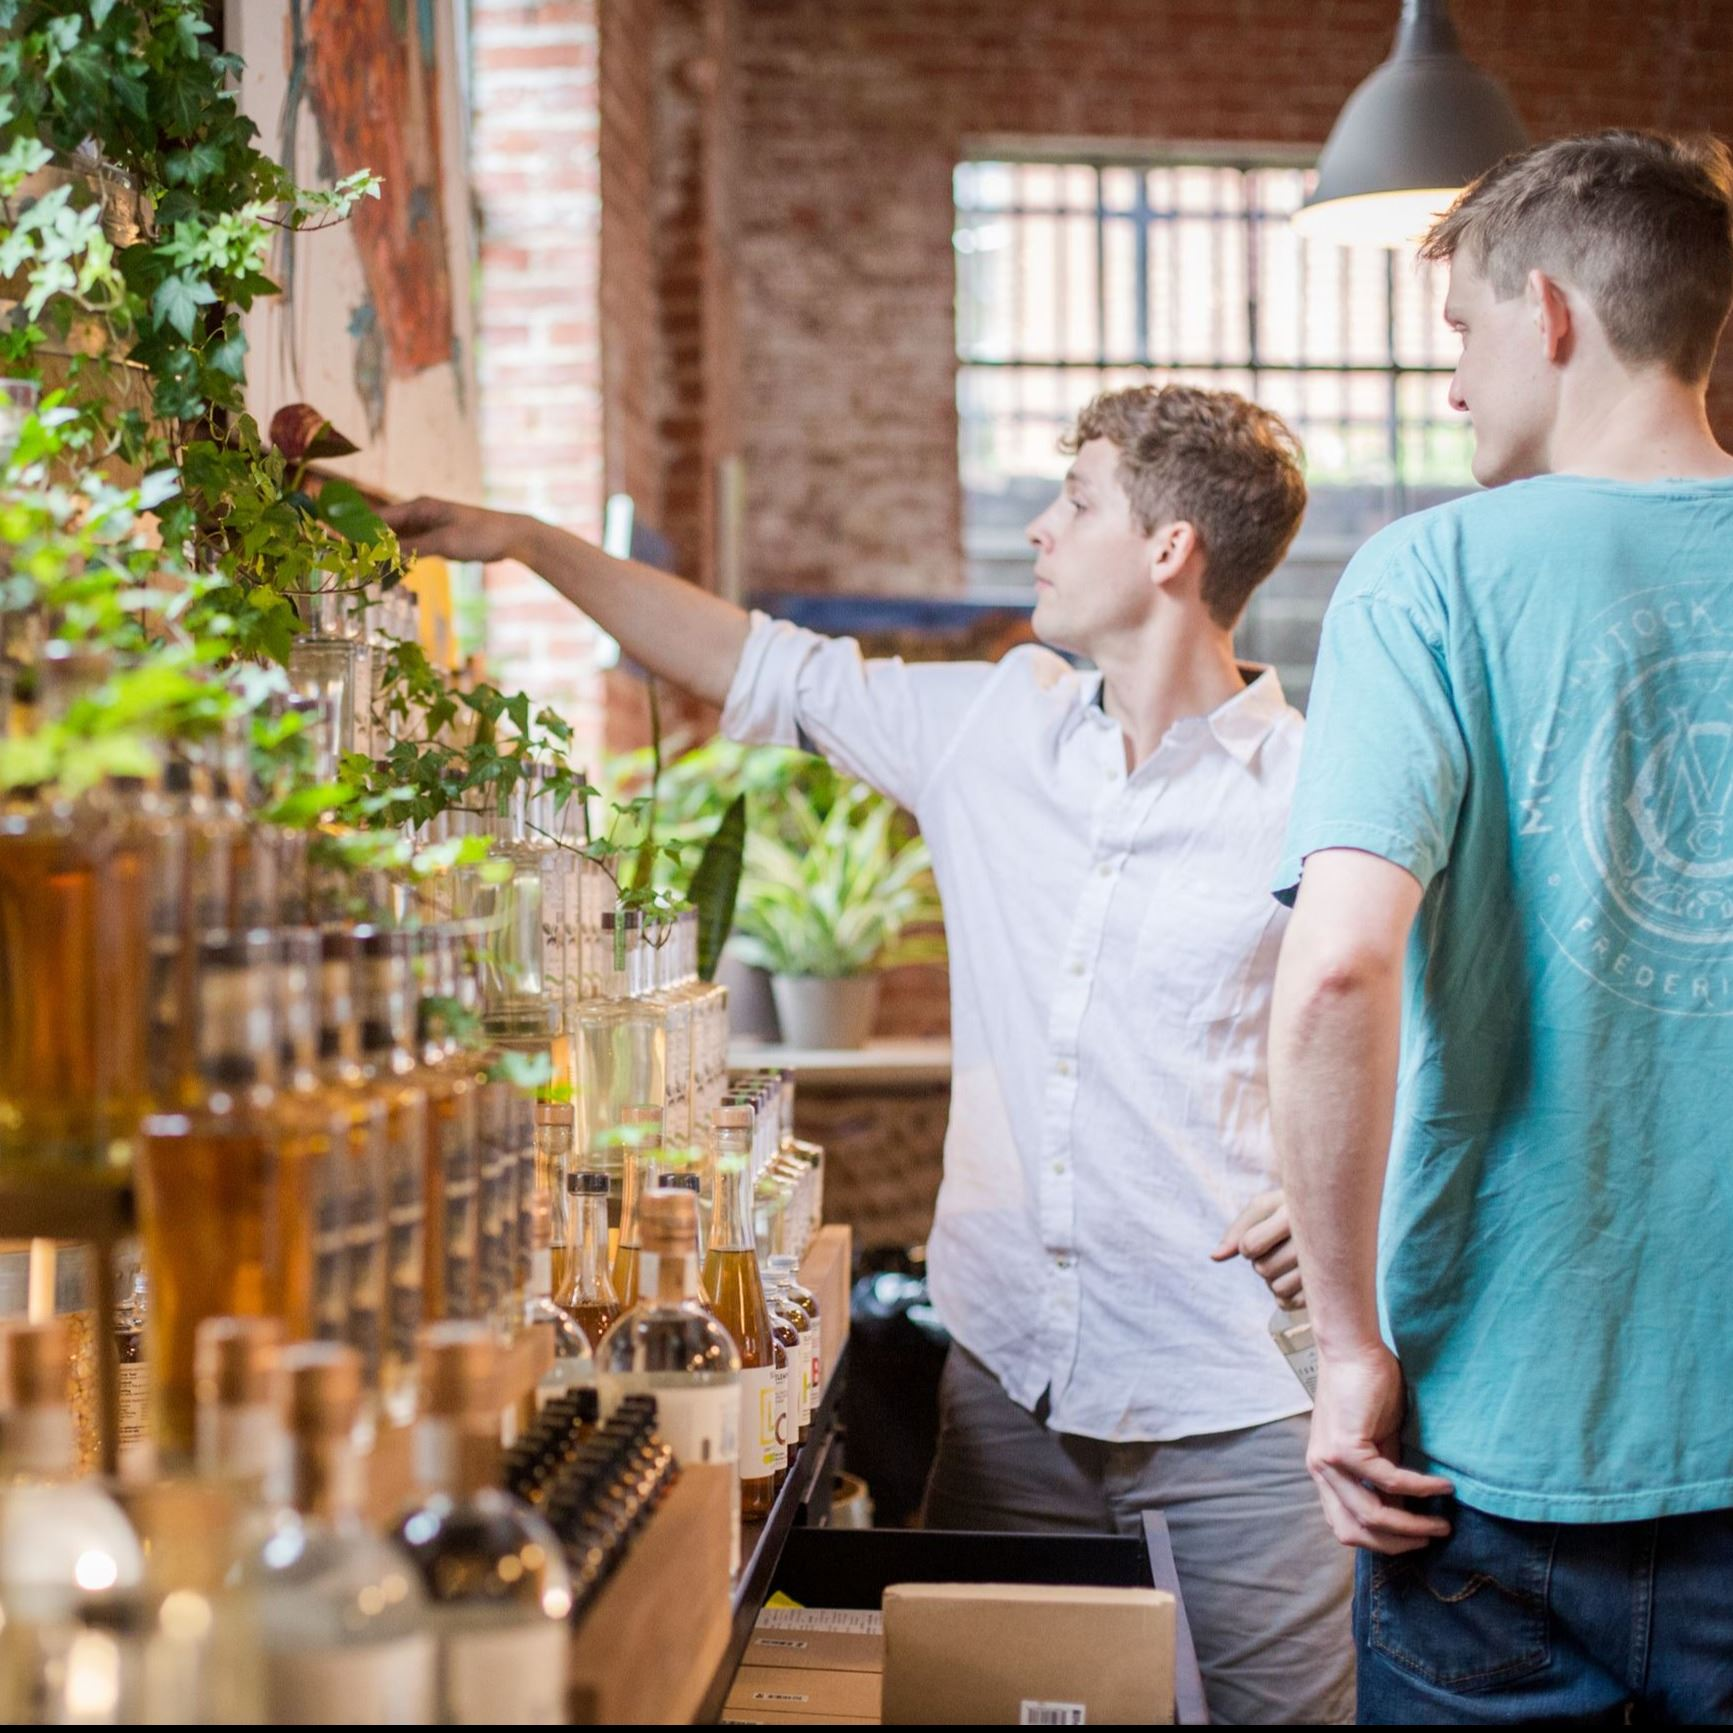 Two men perusing a shelf of alcohol bottles